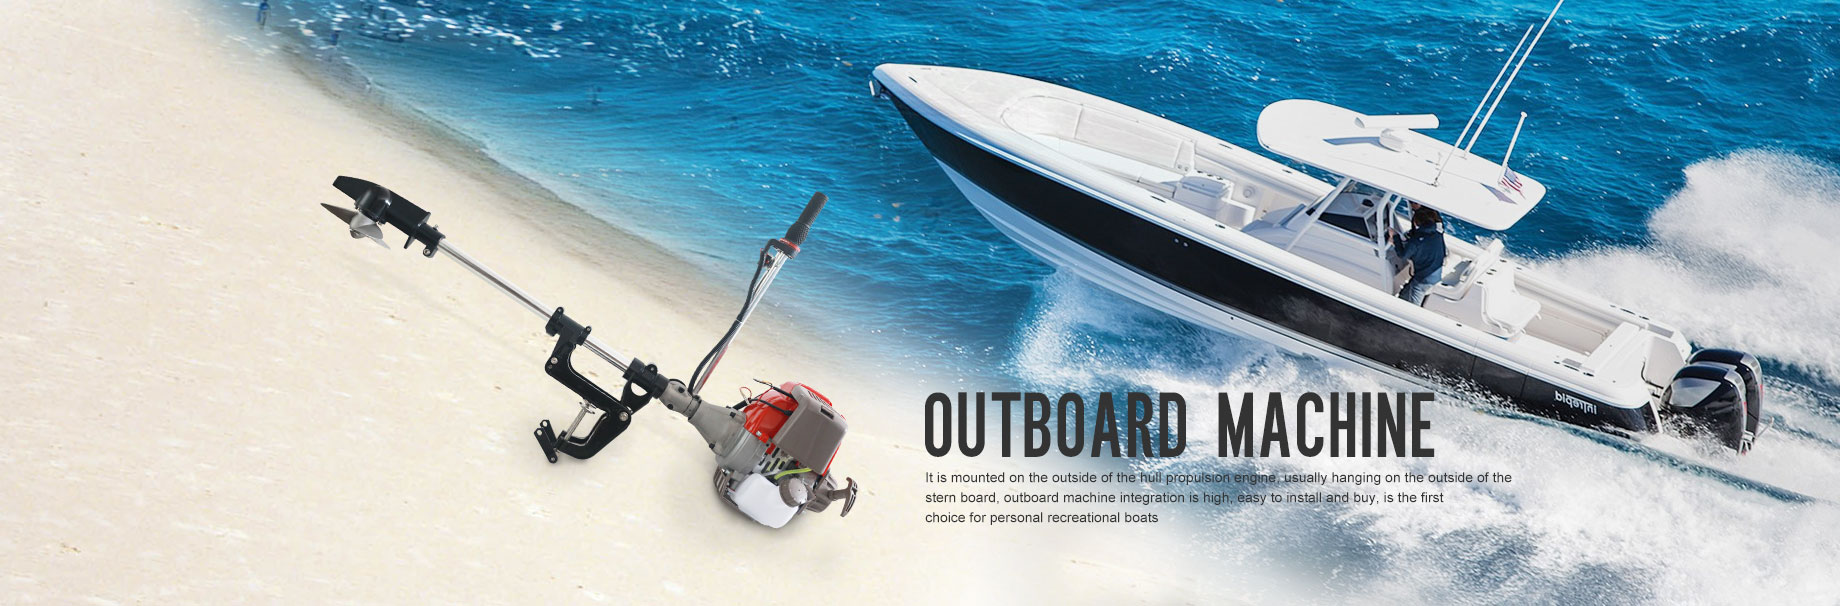 Outboard Machine